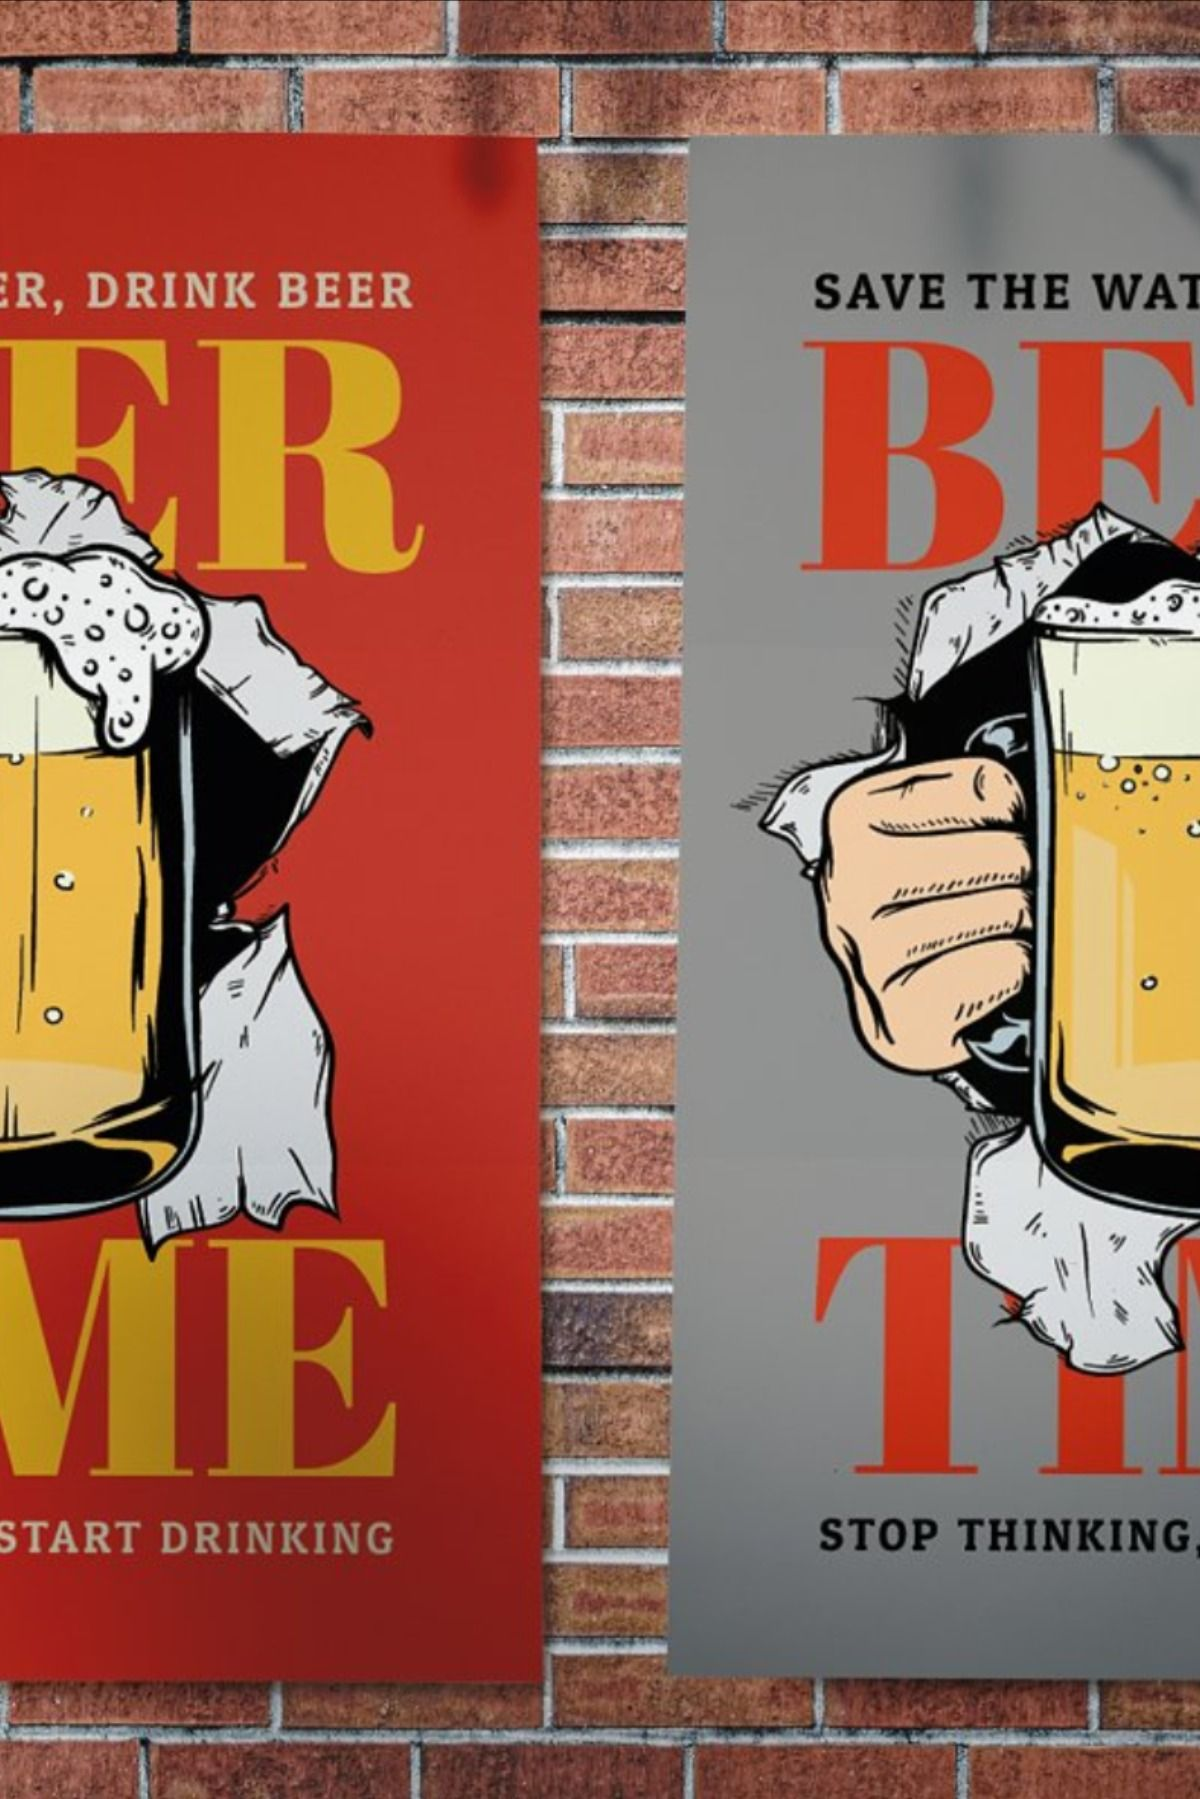 Beer drawing quotes flyer beer drawing flyer drawing